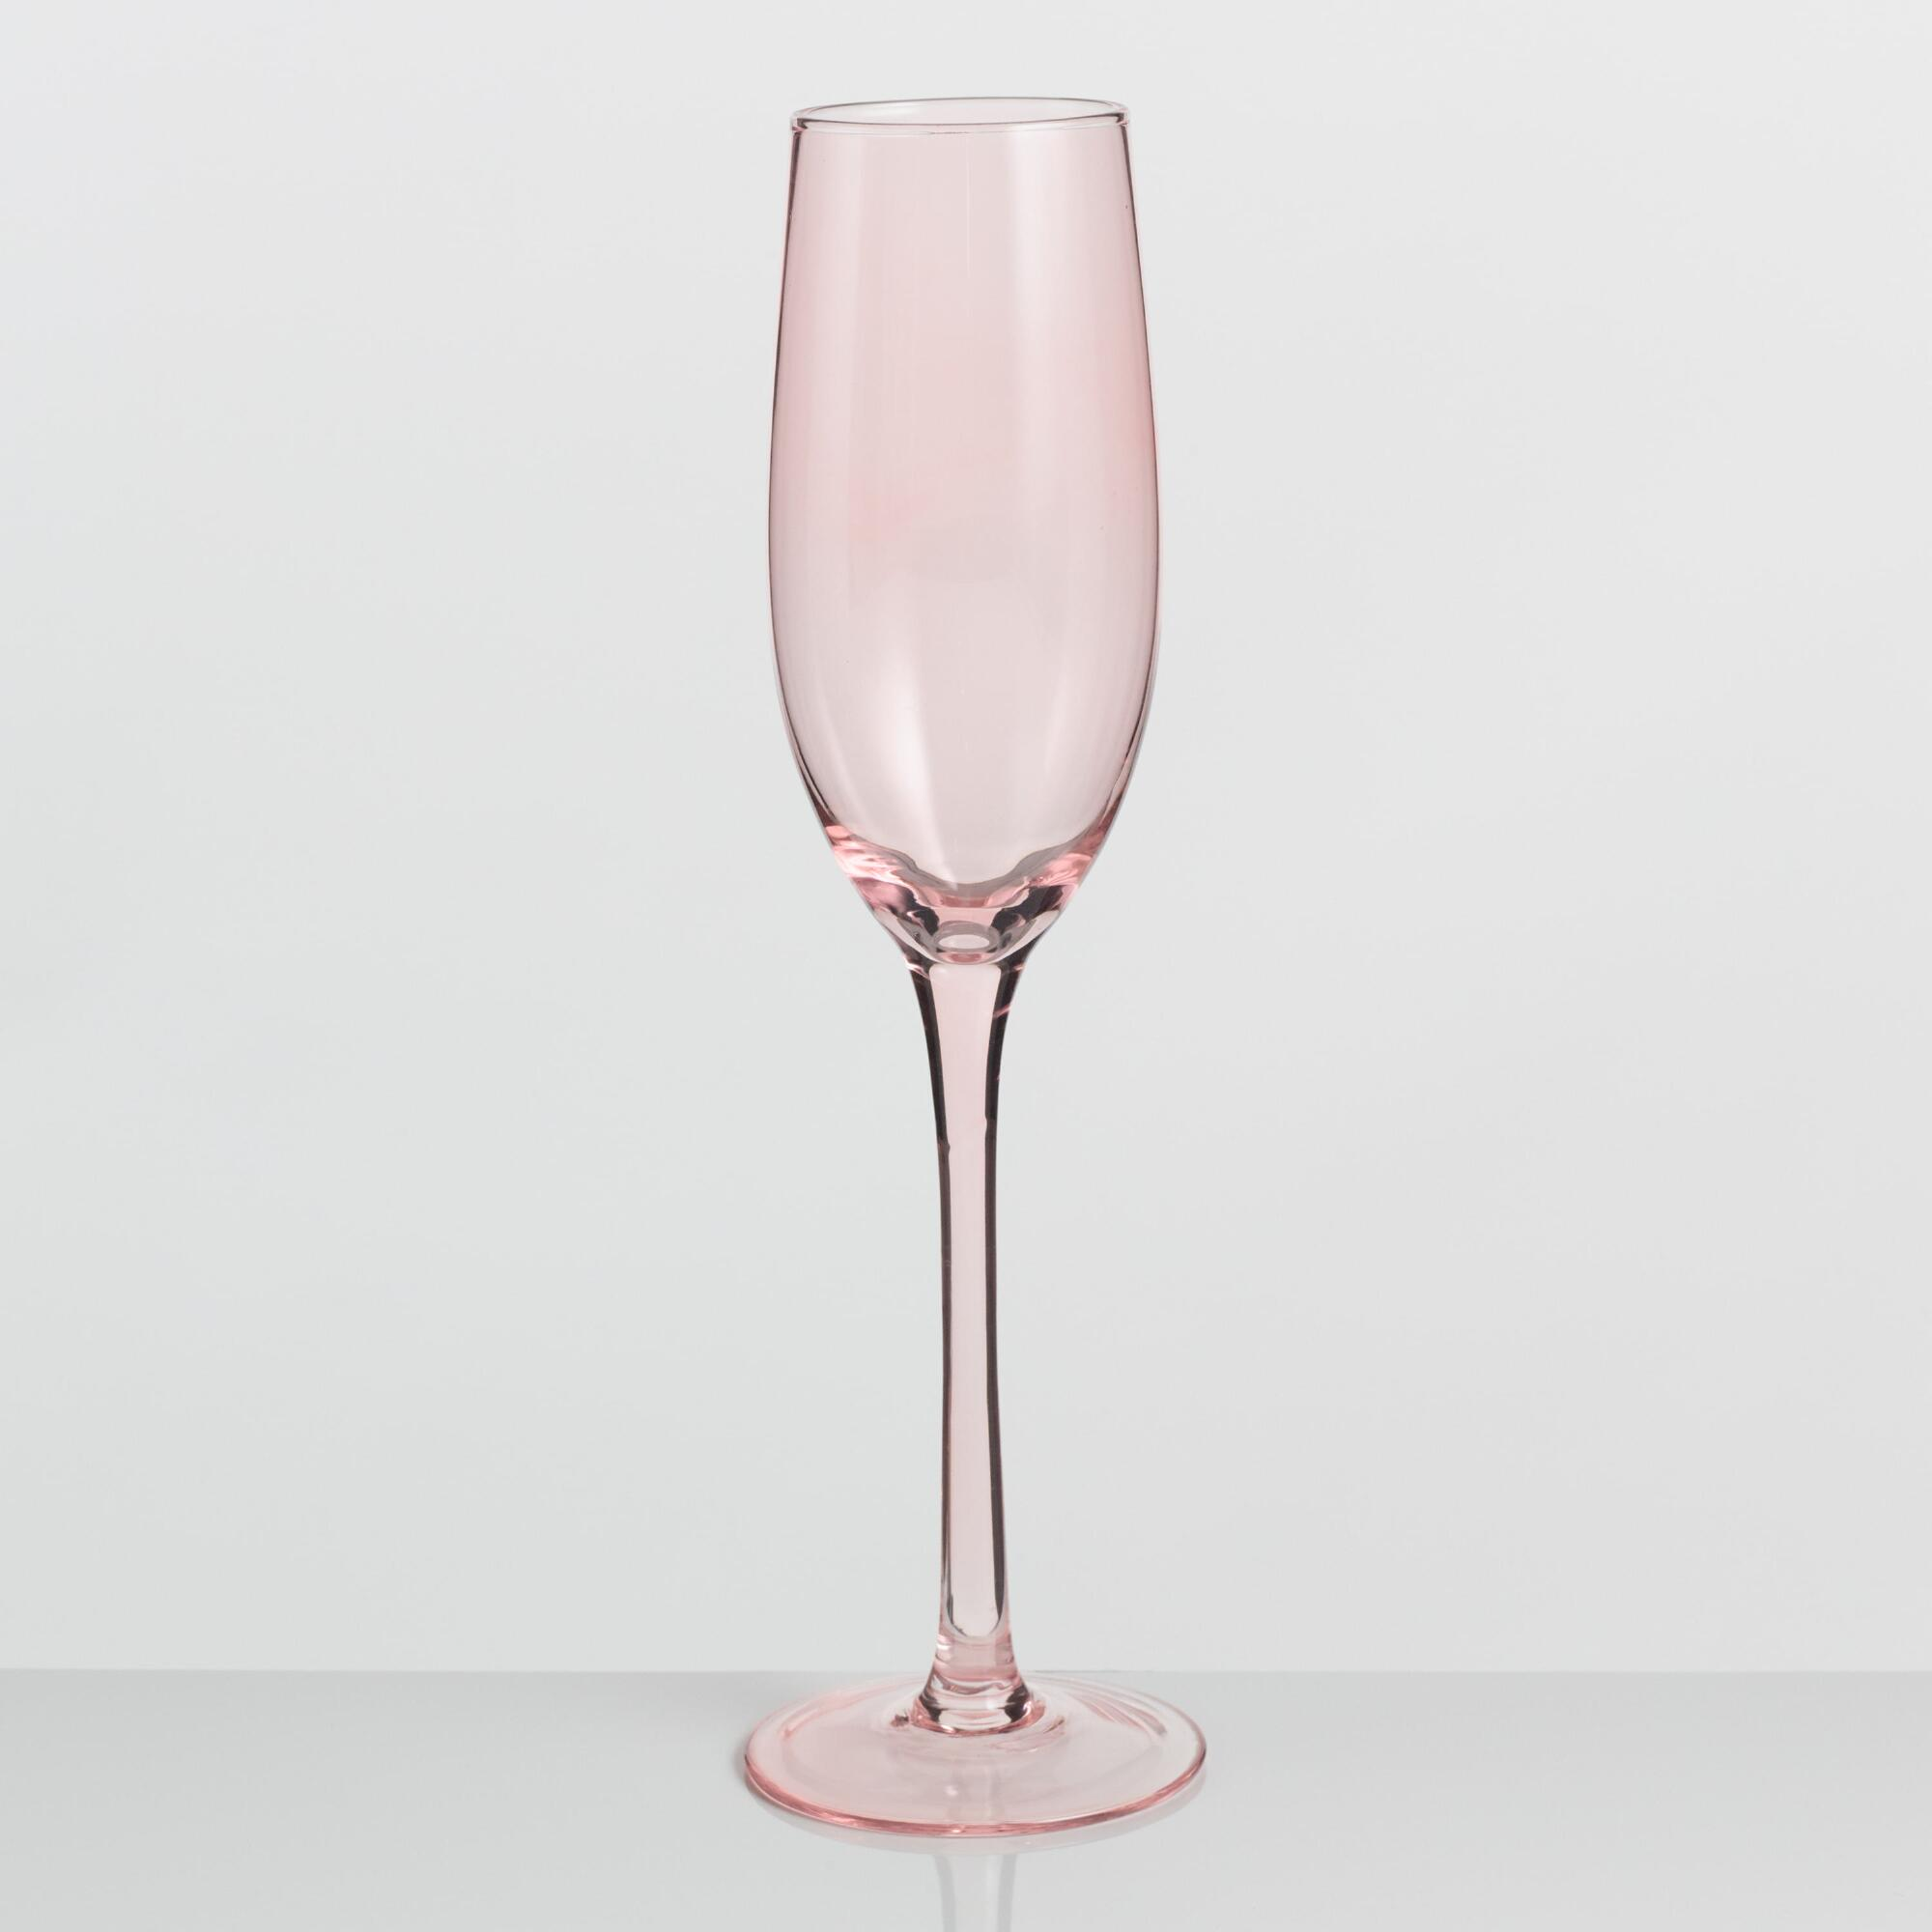 Blush Pink Champagne Flutes Set of 4 by World Market